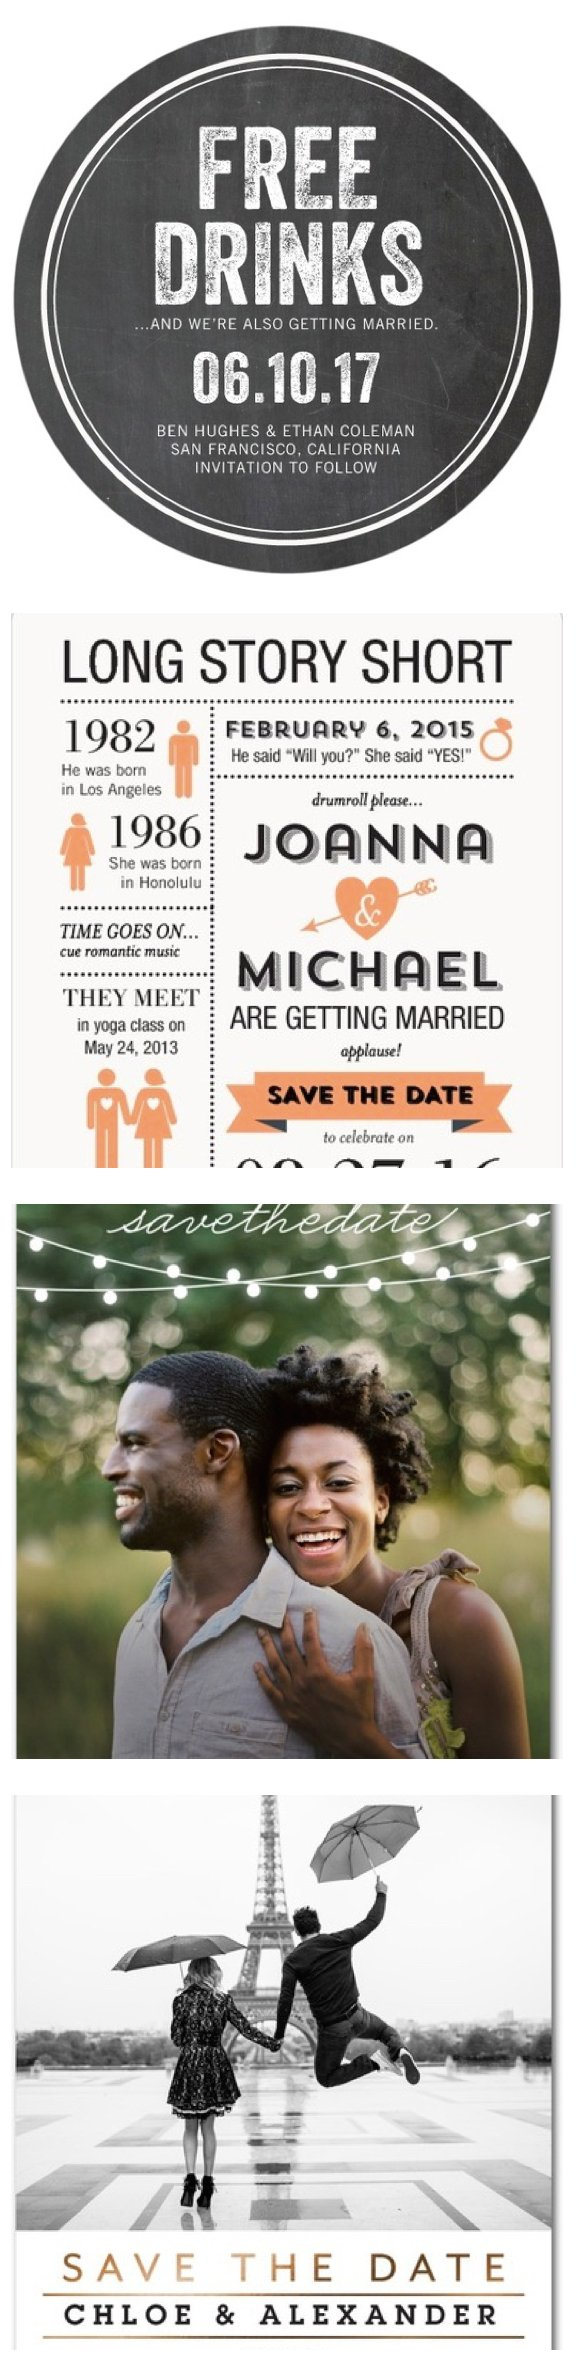 Share The Big Engagement News with Save the Dates